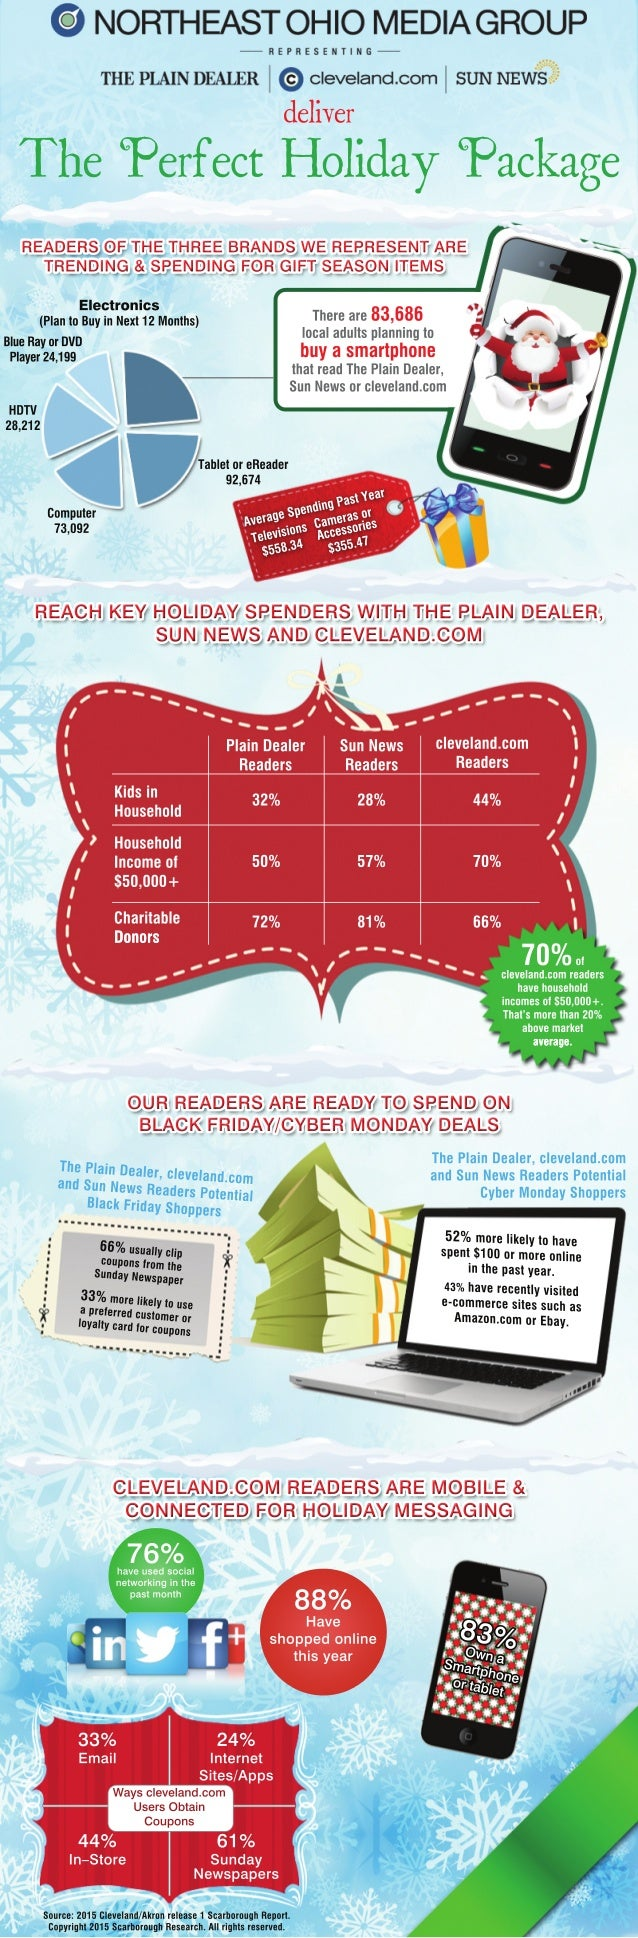 76%haveusedsocial networkinginthe pastmonth 88% Have shoppedonline thisyear 33% Email 24% Internet Sites/Apps 44% In–Store...